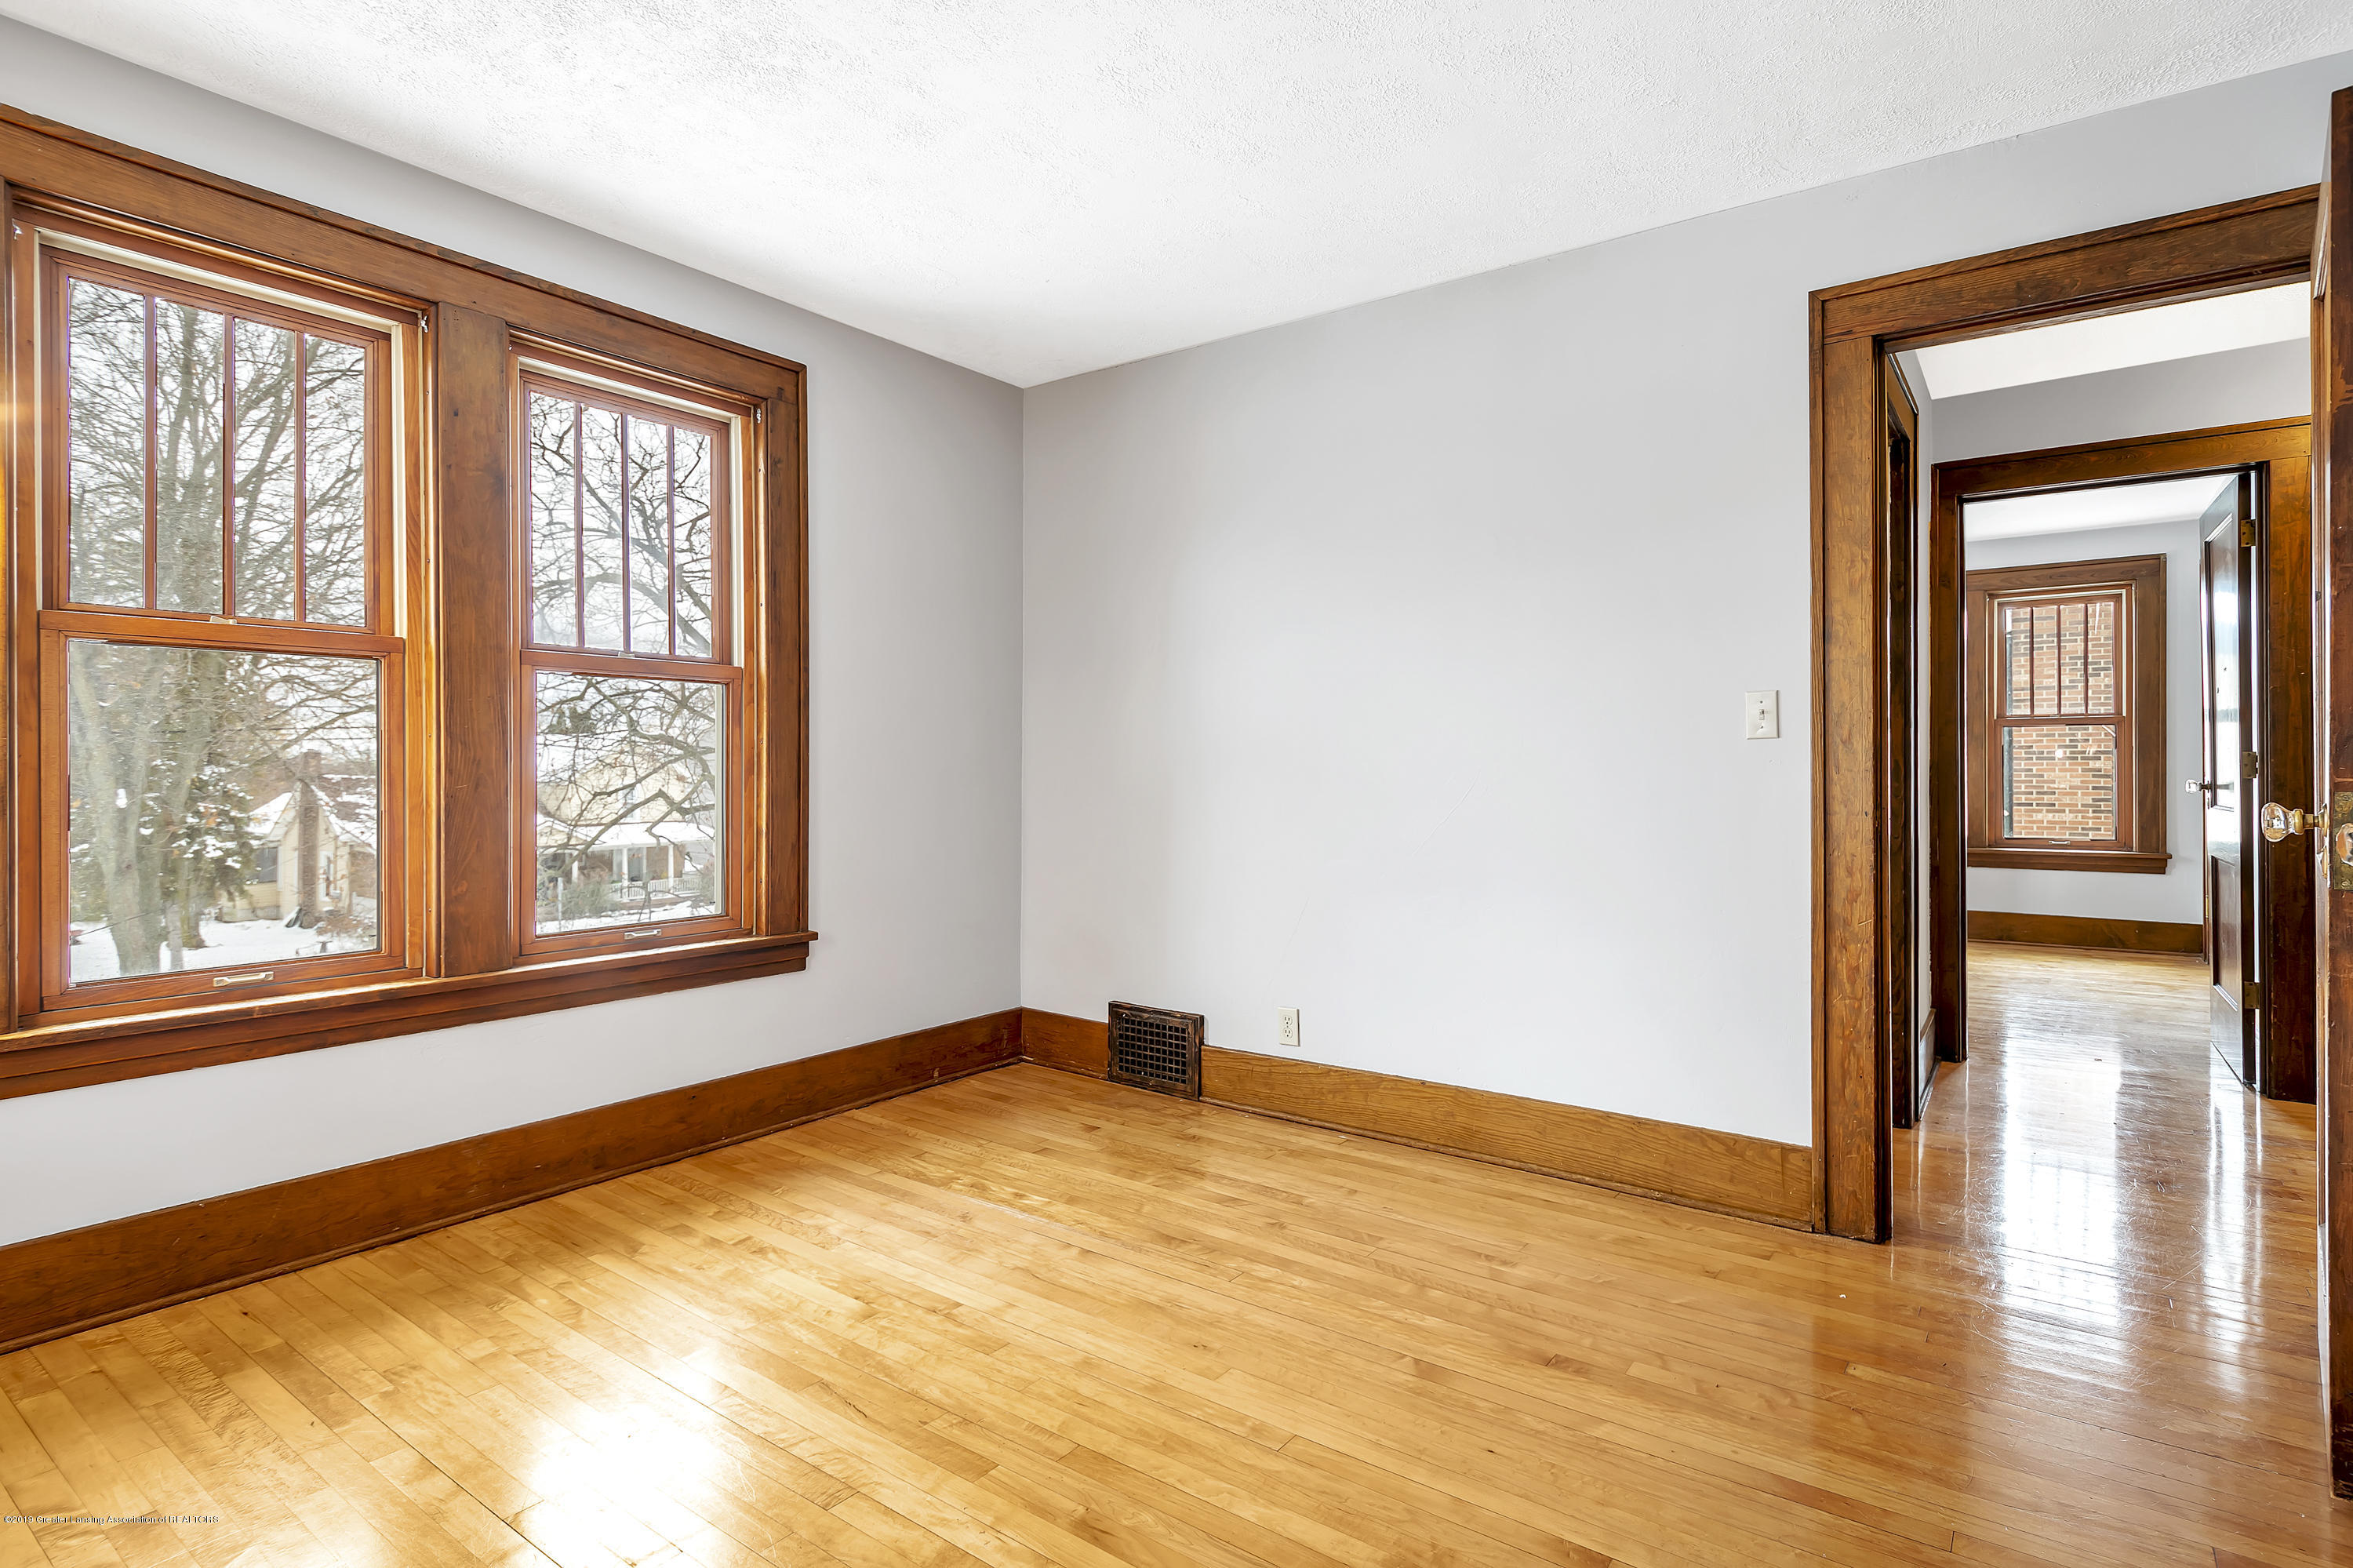 412 E Jefferson St - 412-E-Jefferson-WindowStill-Real-Estate- - 29